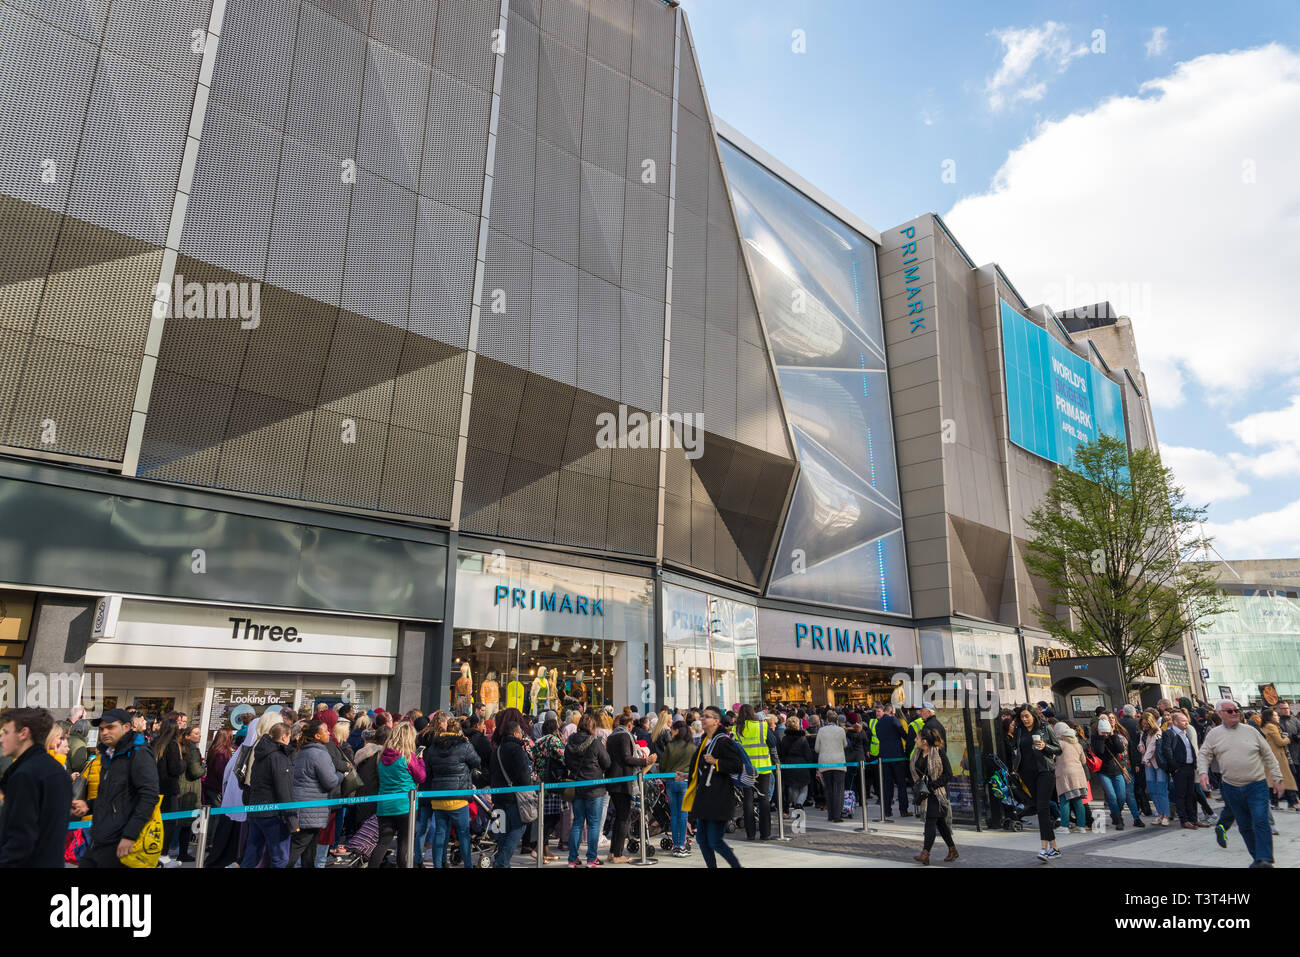 Crowds queuing outside the world's largest Primark store opened in Birmingham, UK on 11 April 2019. - Stock Image